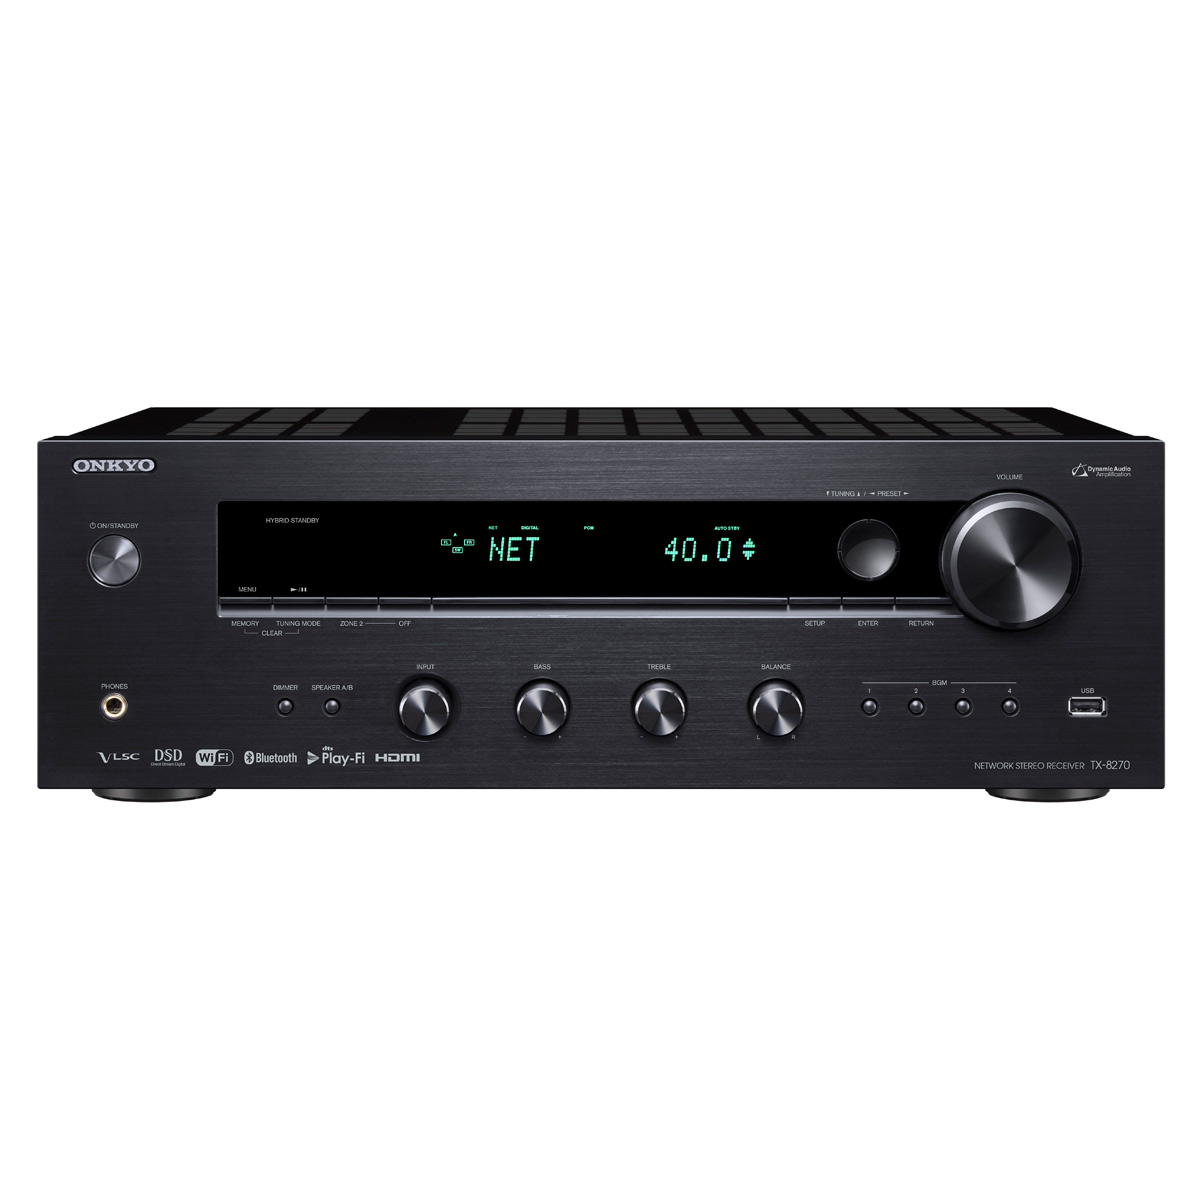 Onkyo TX-8270 Network Stereo Receiver with Built-In HDMI, Wi-Fi, and Bluetooth by Onkyo